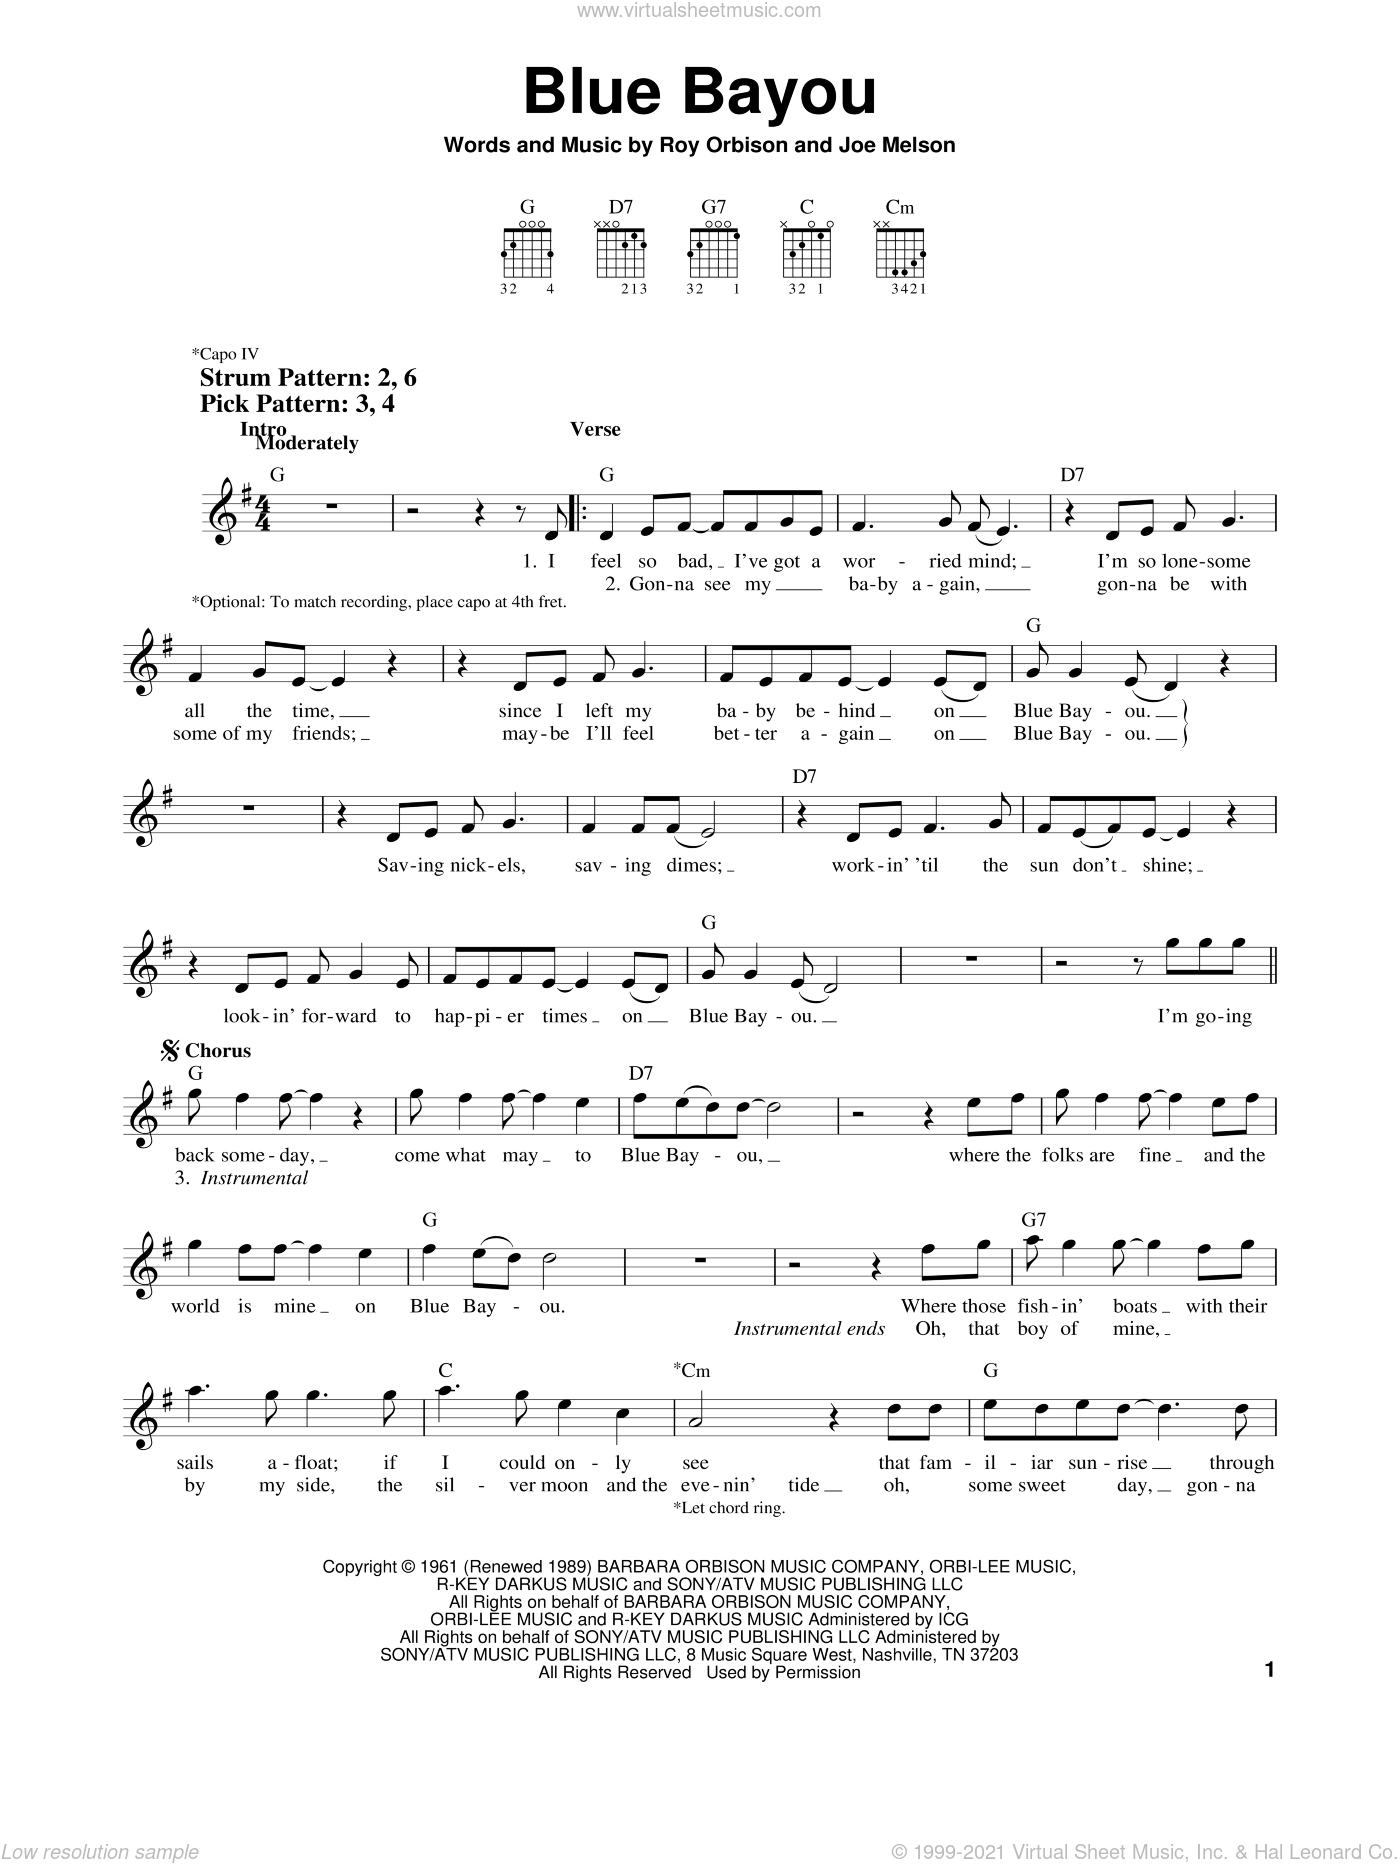 Blue Bayou sheet music for guitar solo (chords) by Joe Melson